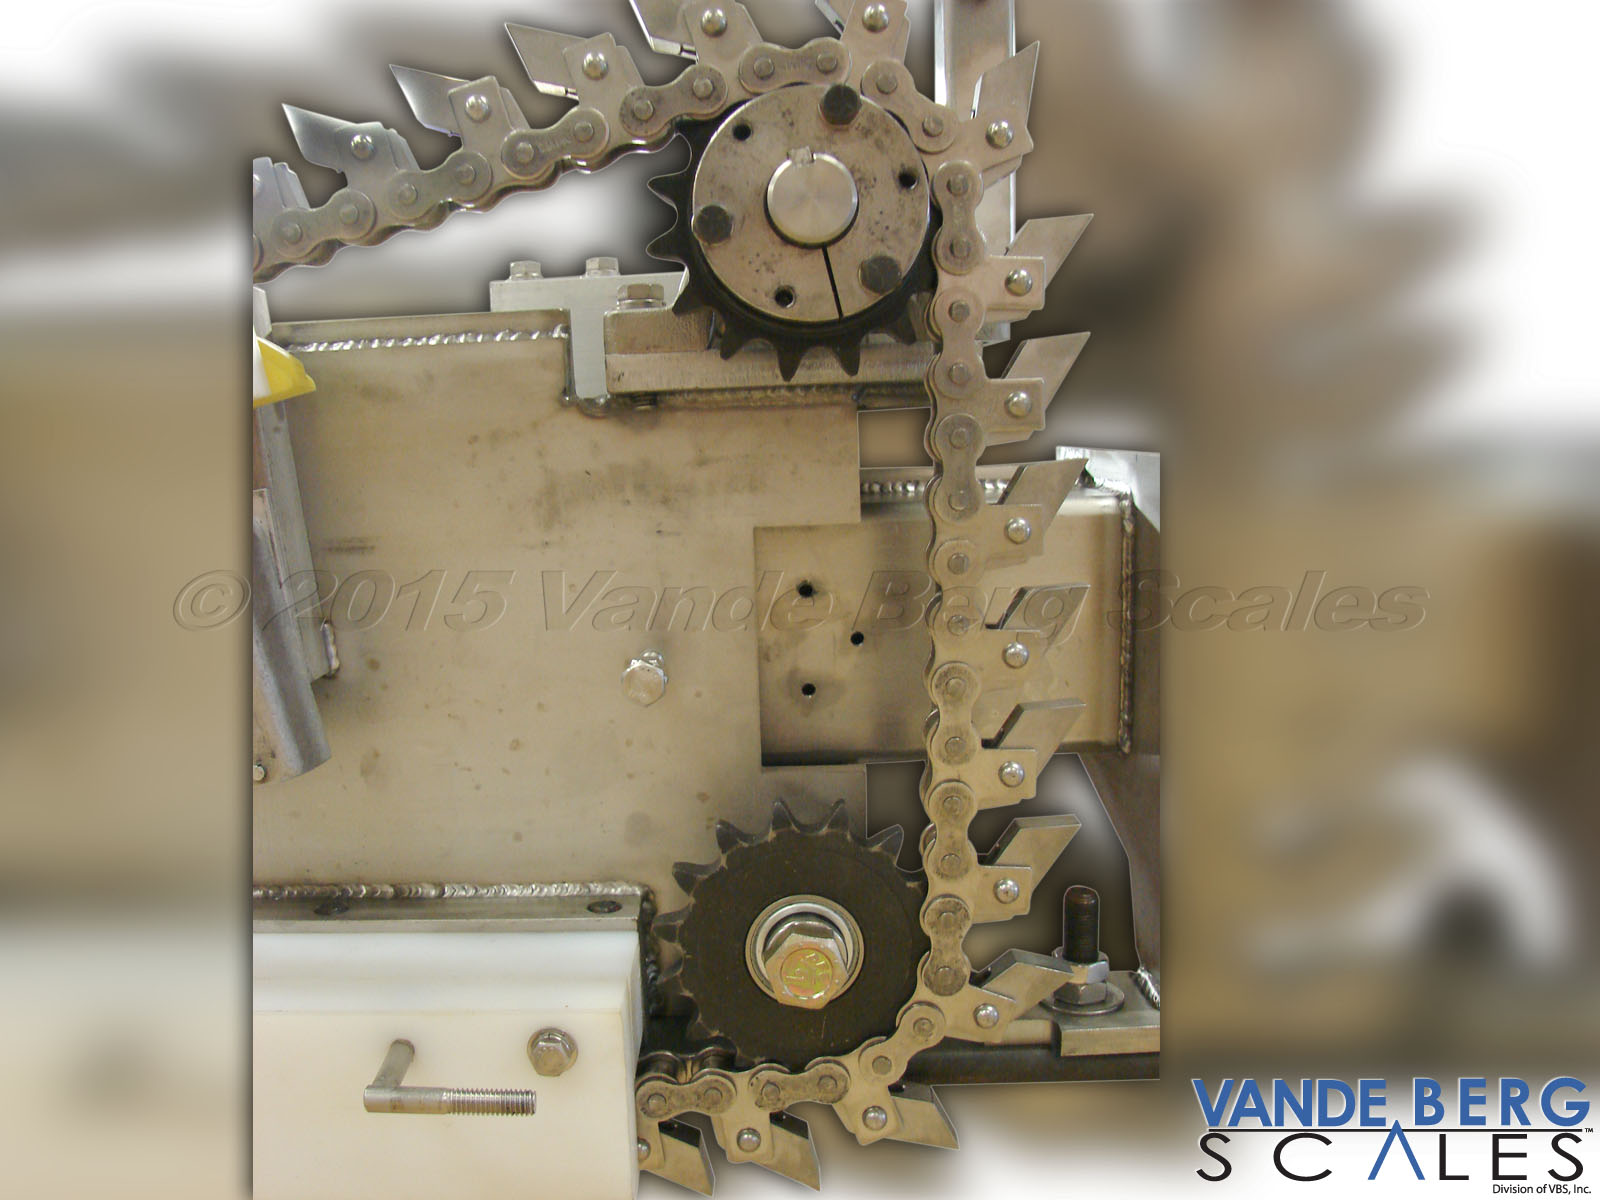 Simple direct gear box drive ensures simplicity and longevity